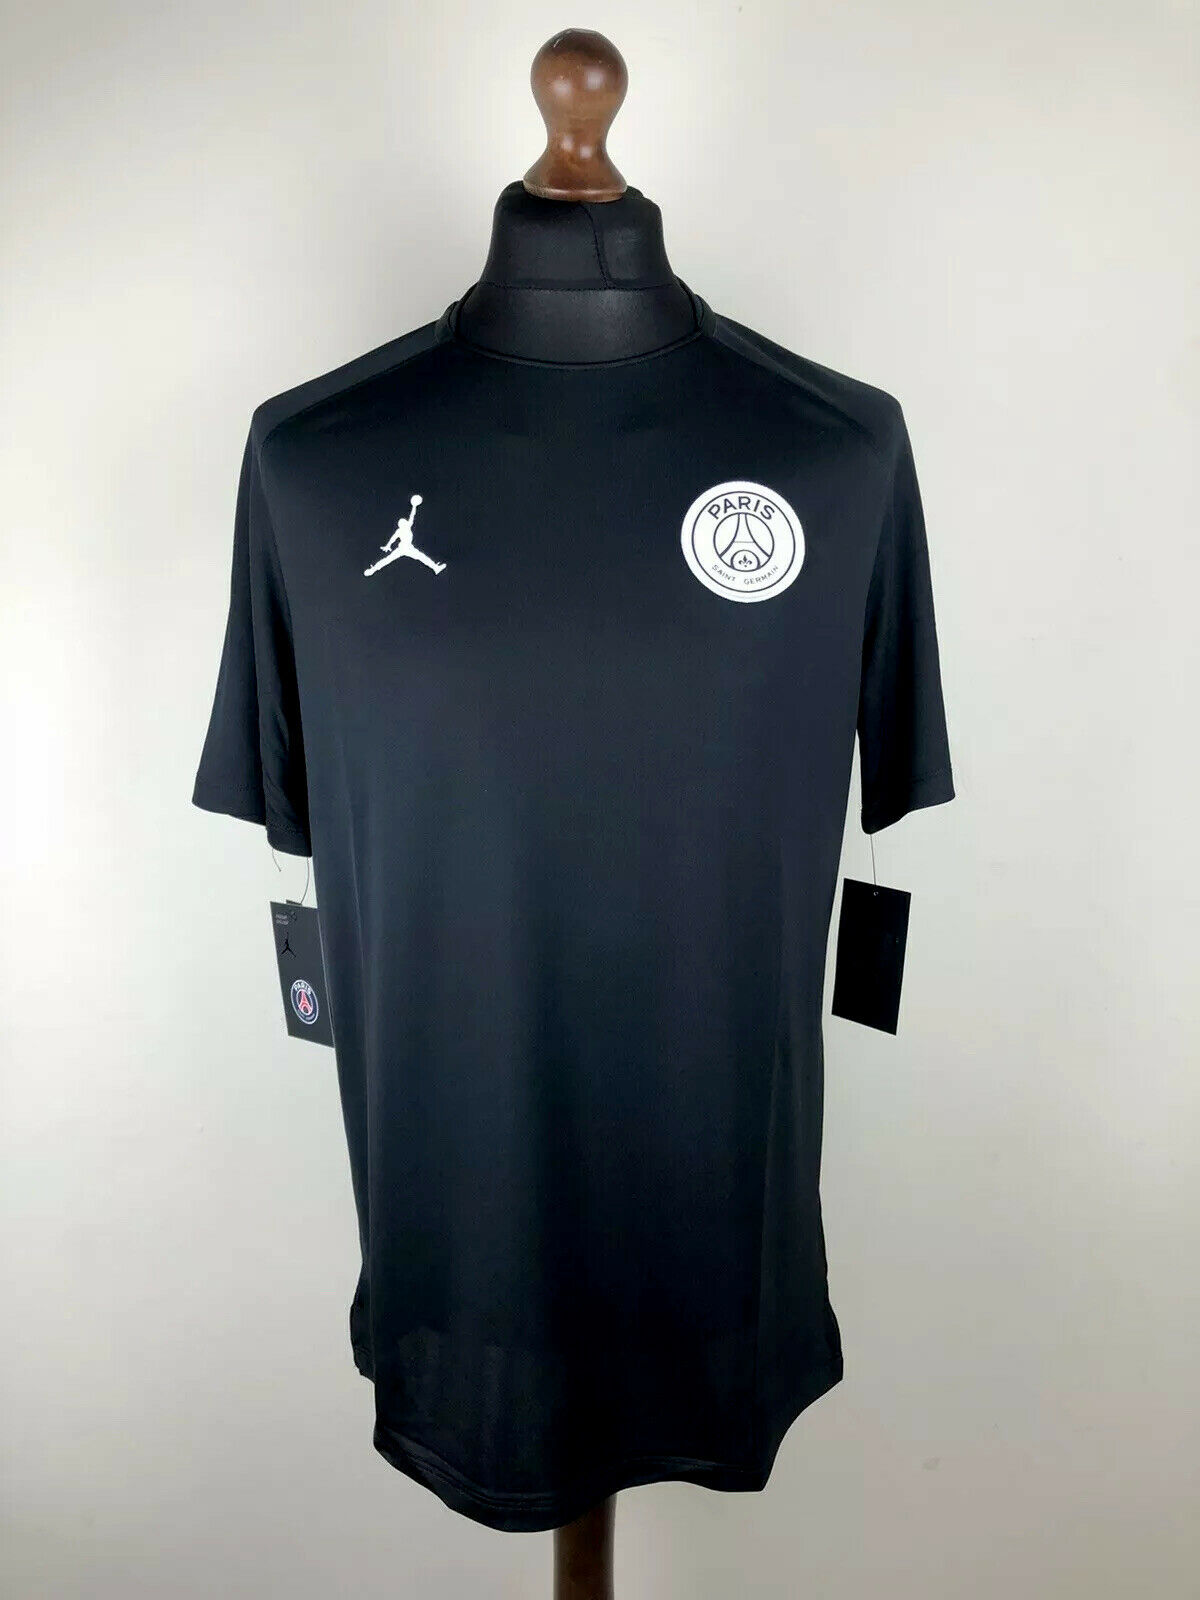 Nike Paris St Germain Psg Crest T Shirt Mens Charcoal Football Soccer Top Tee For Sale Online Ebay